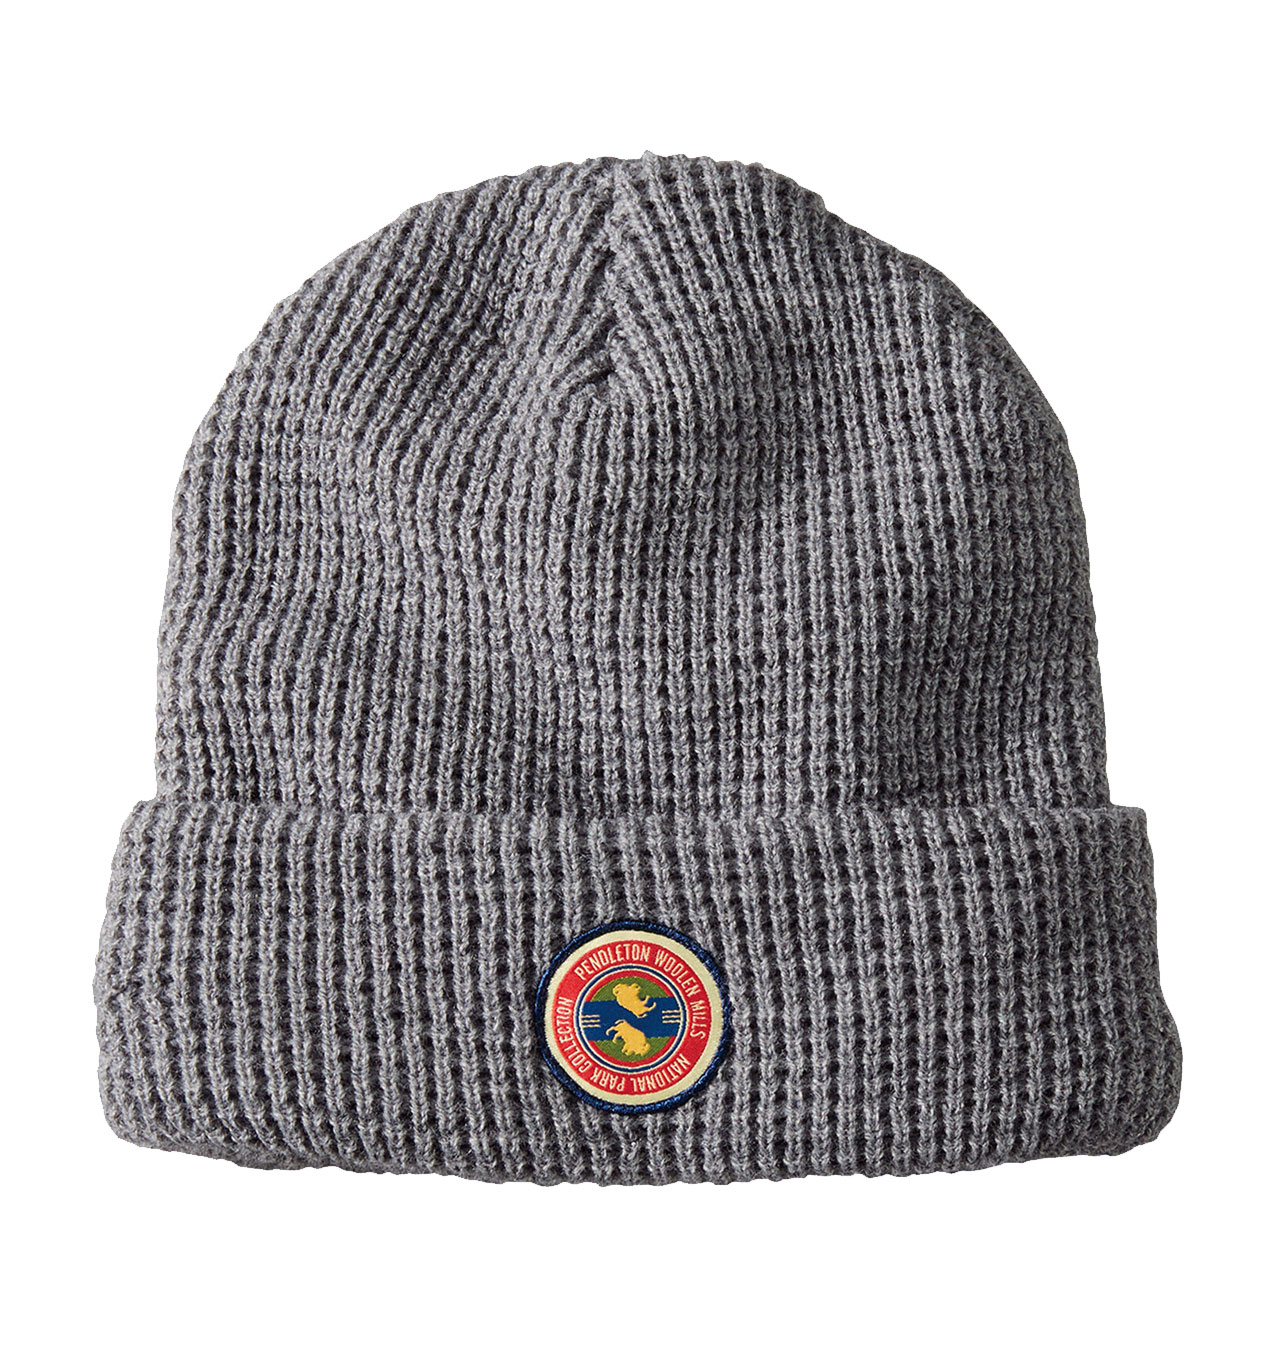 Pendleton - National Park Patch Waffle Beanie - Light Grey Heather